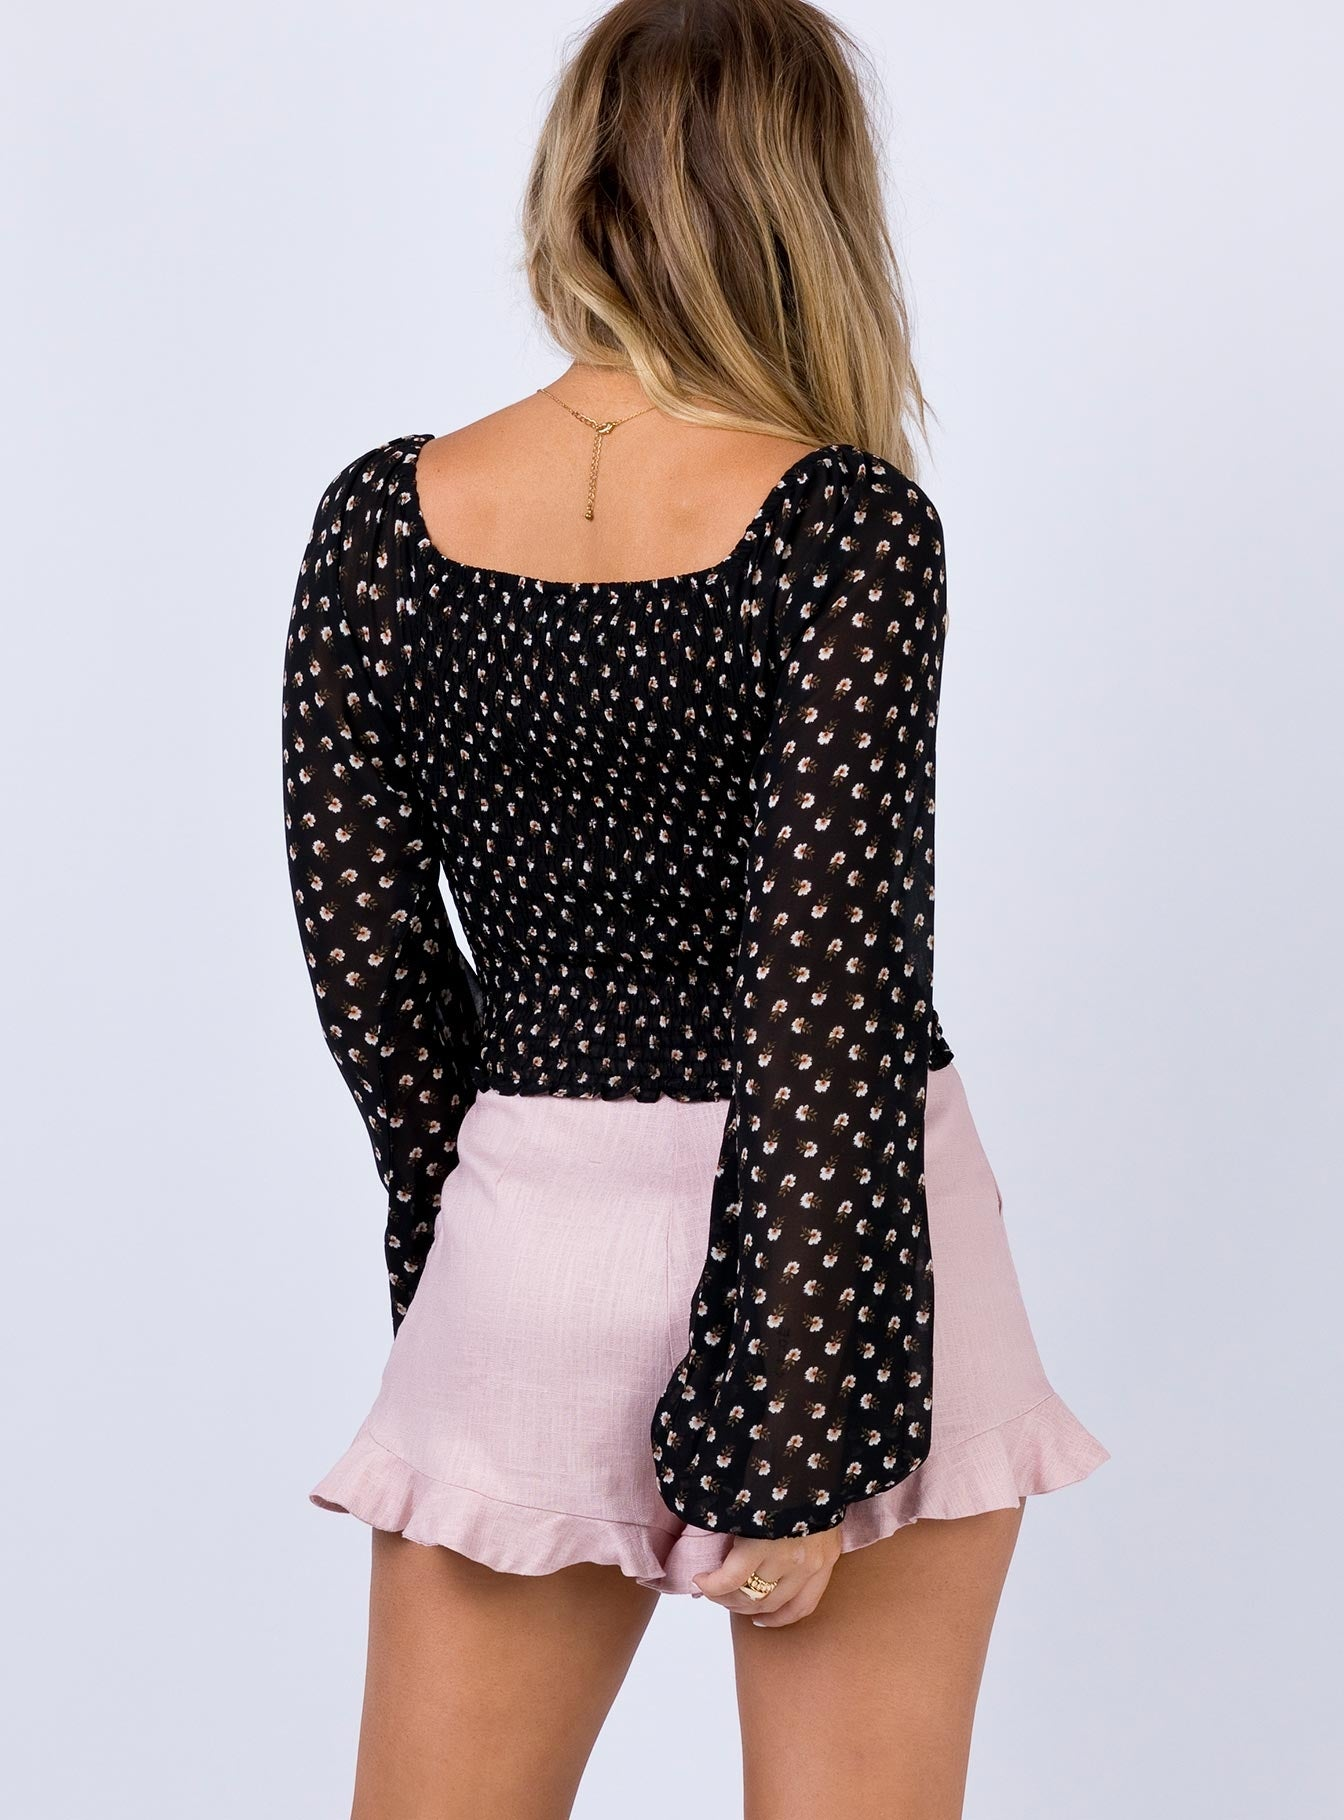 Short Lane Top Black